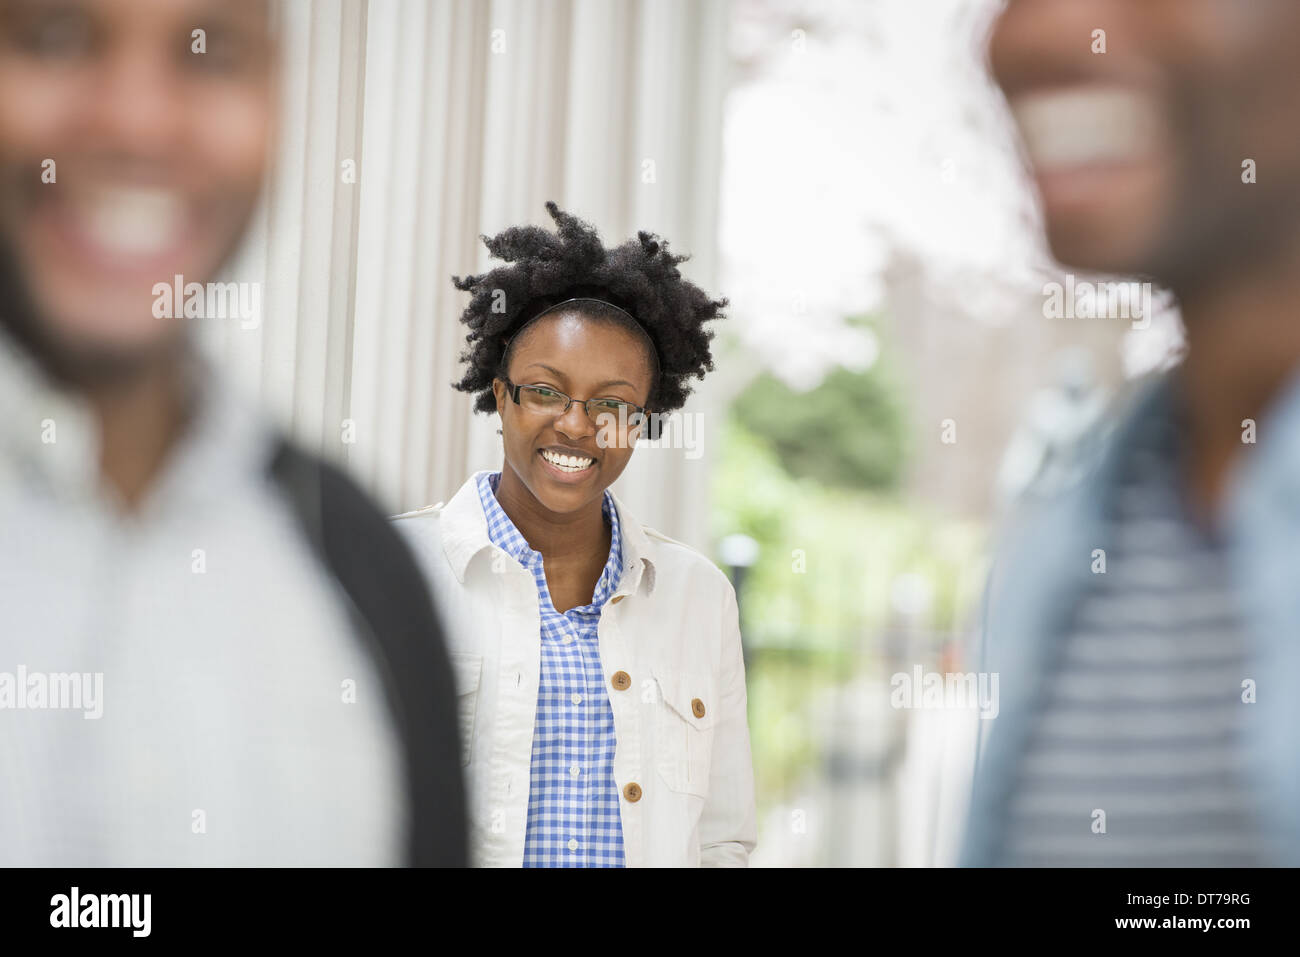 A woman looking at the camera, with two men in the foreground. - Stock Image